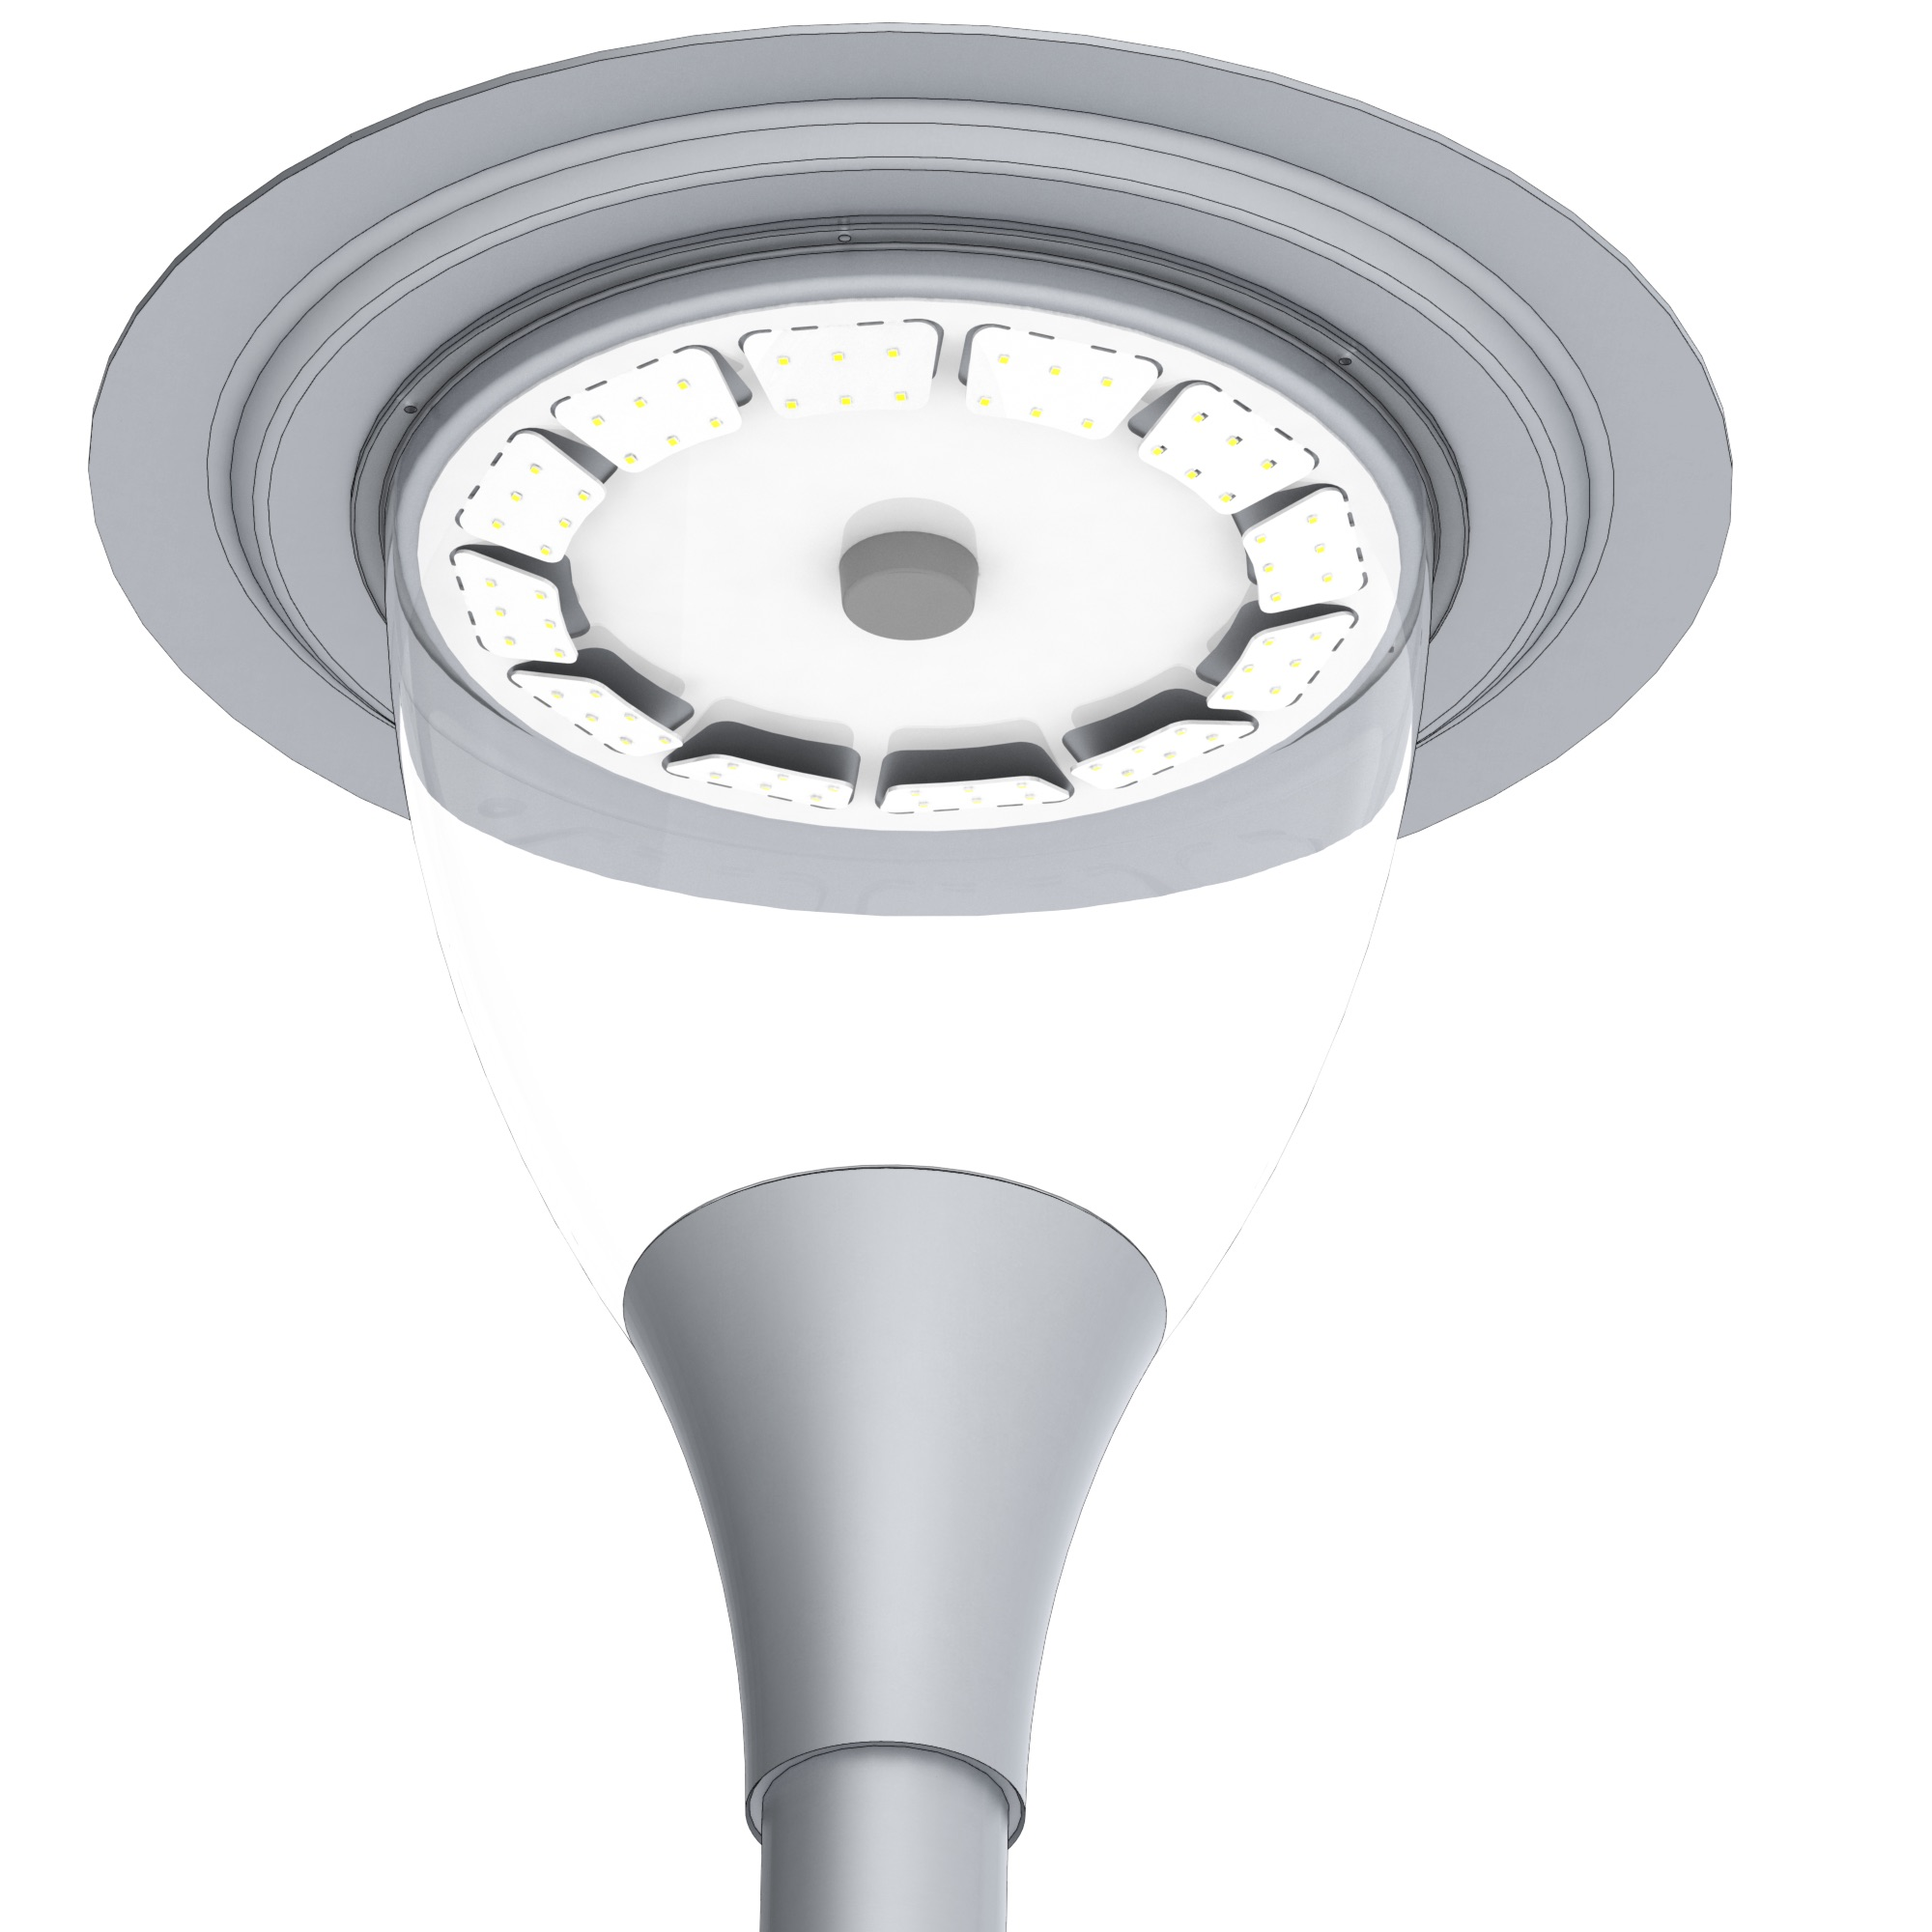 SLS2 Series Solar Street Light